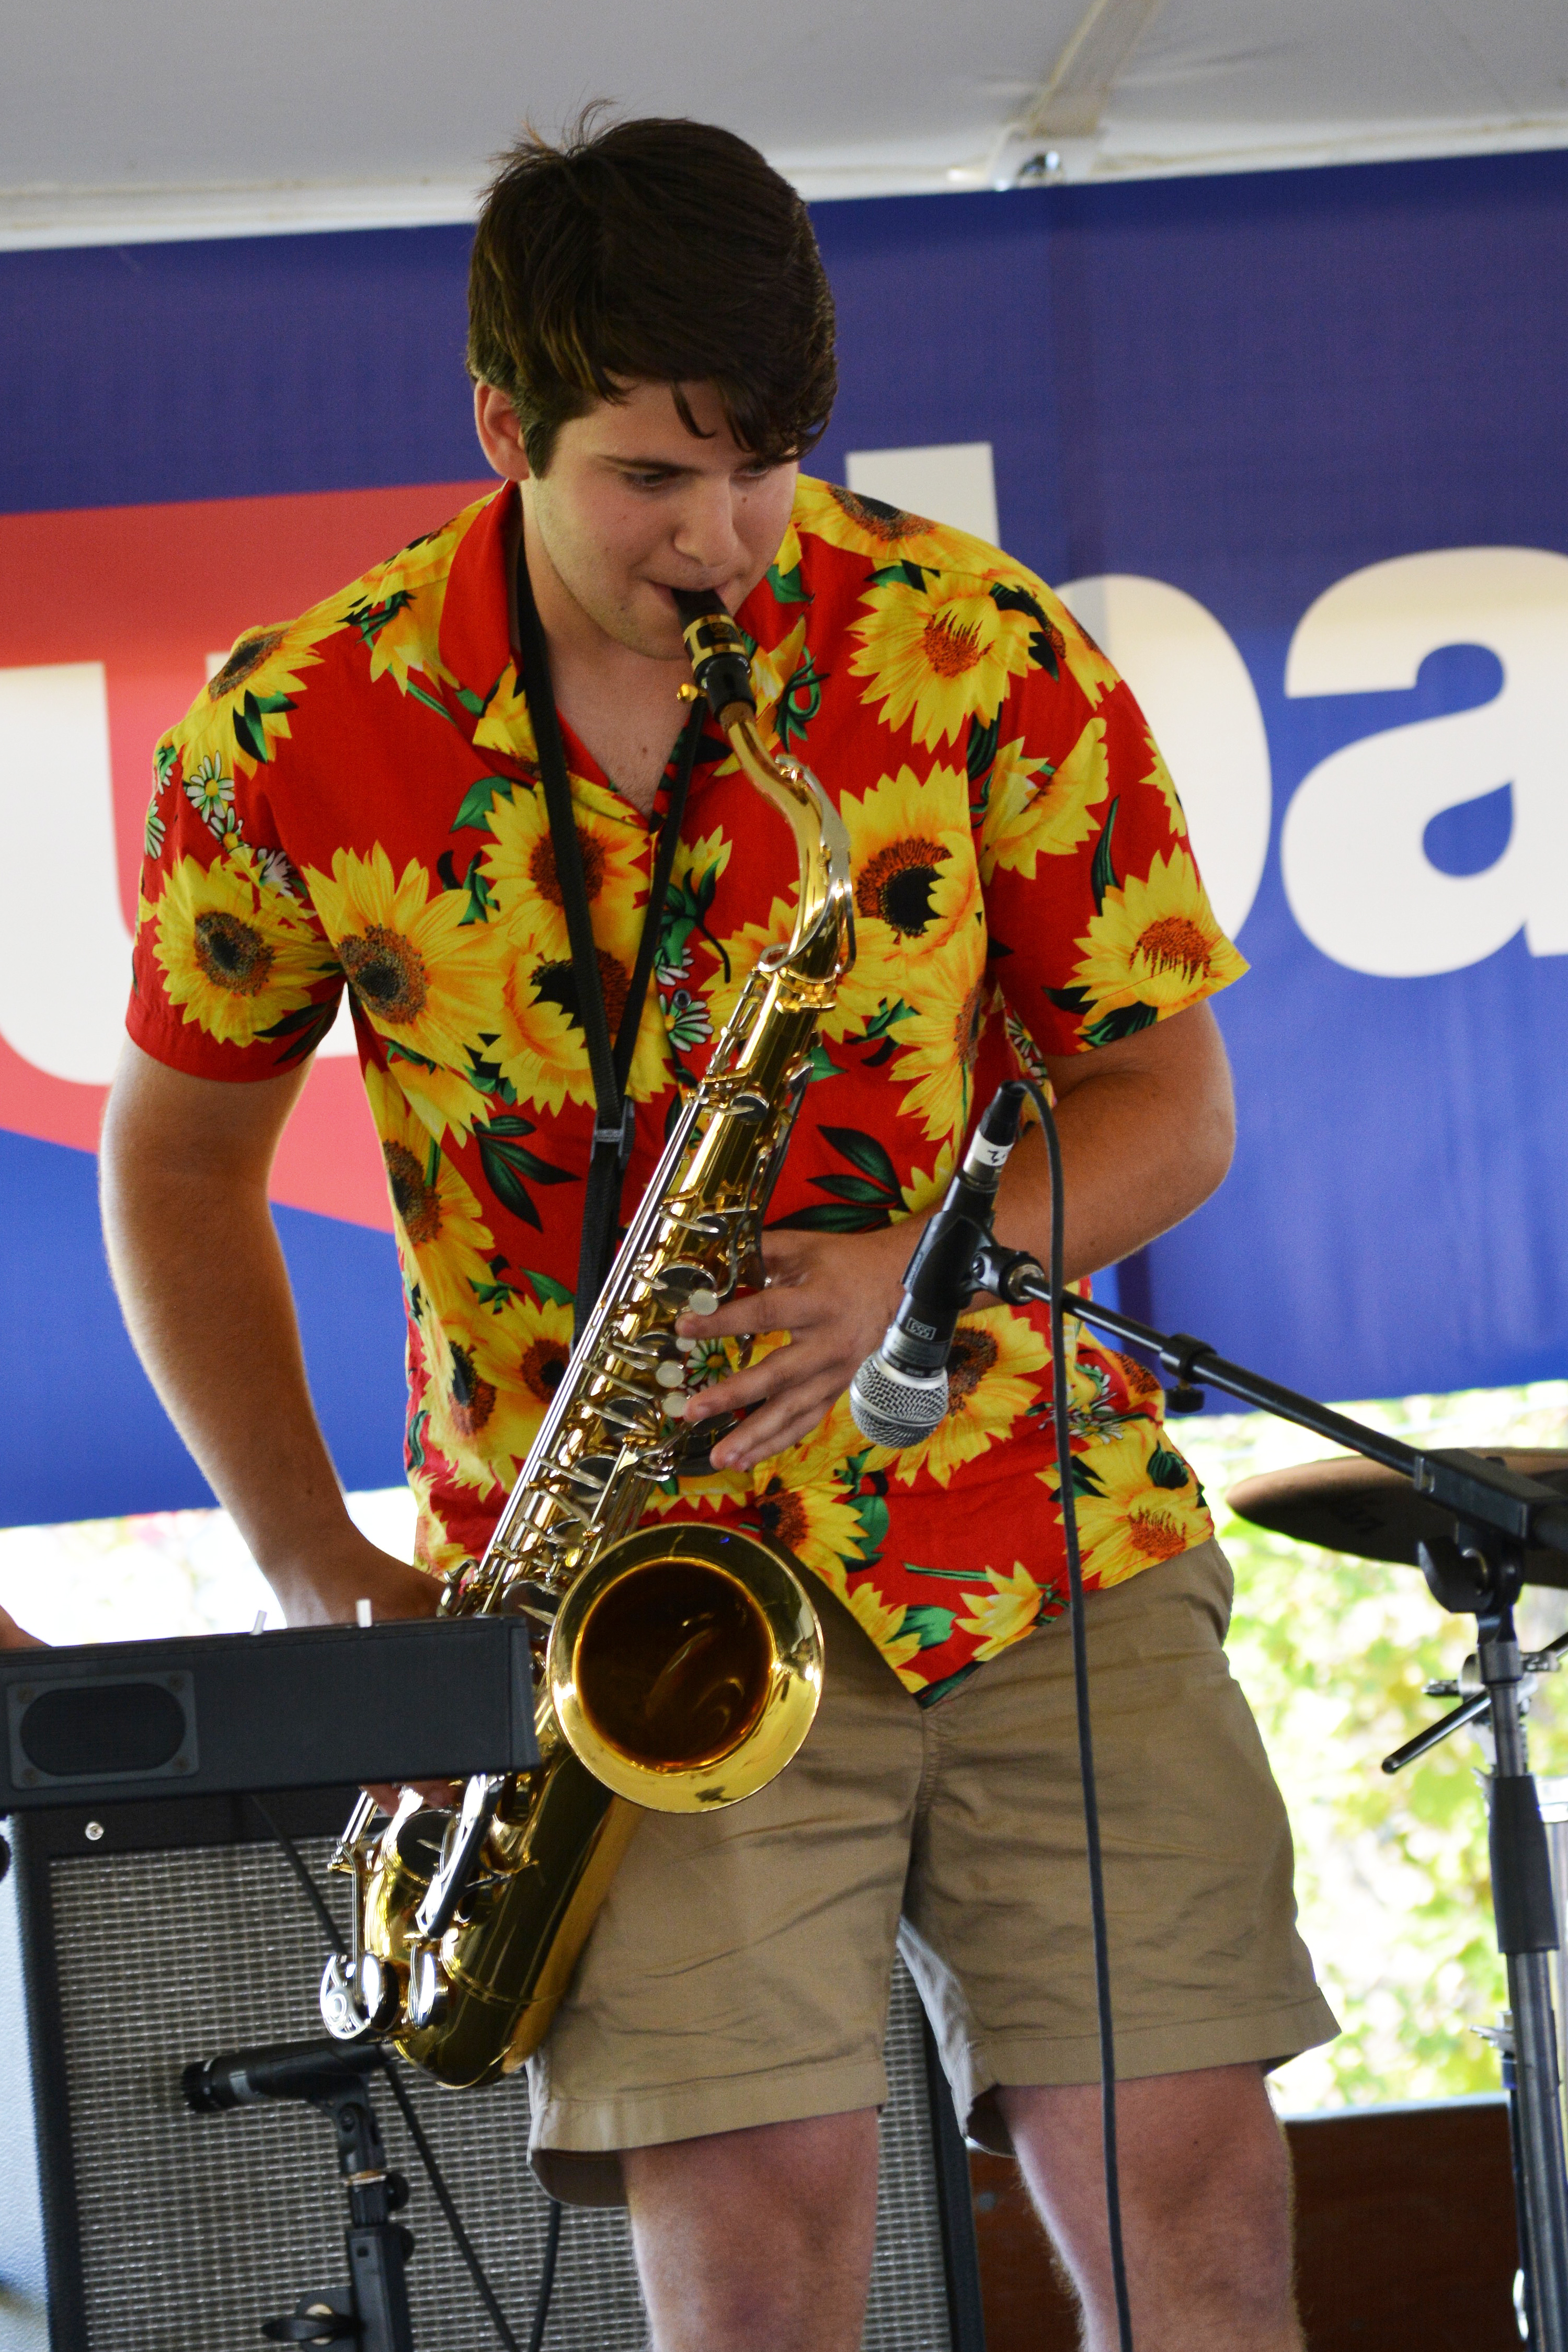 Musician plays saxophone on stage